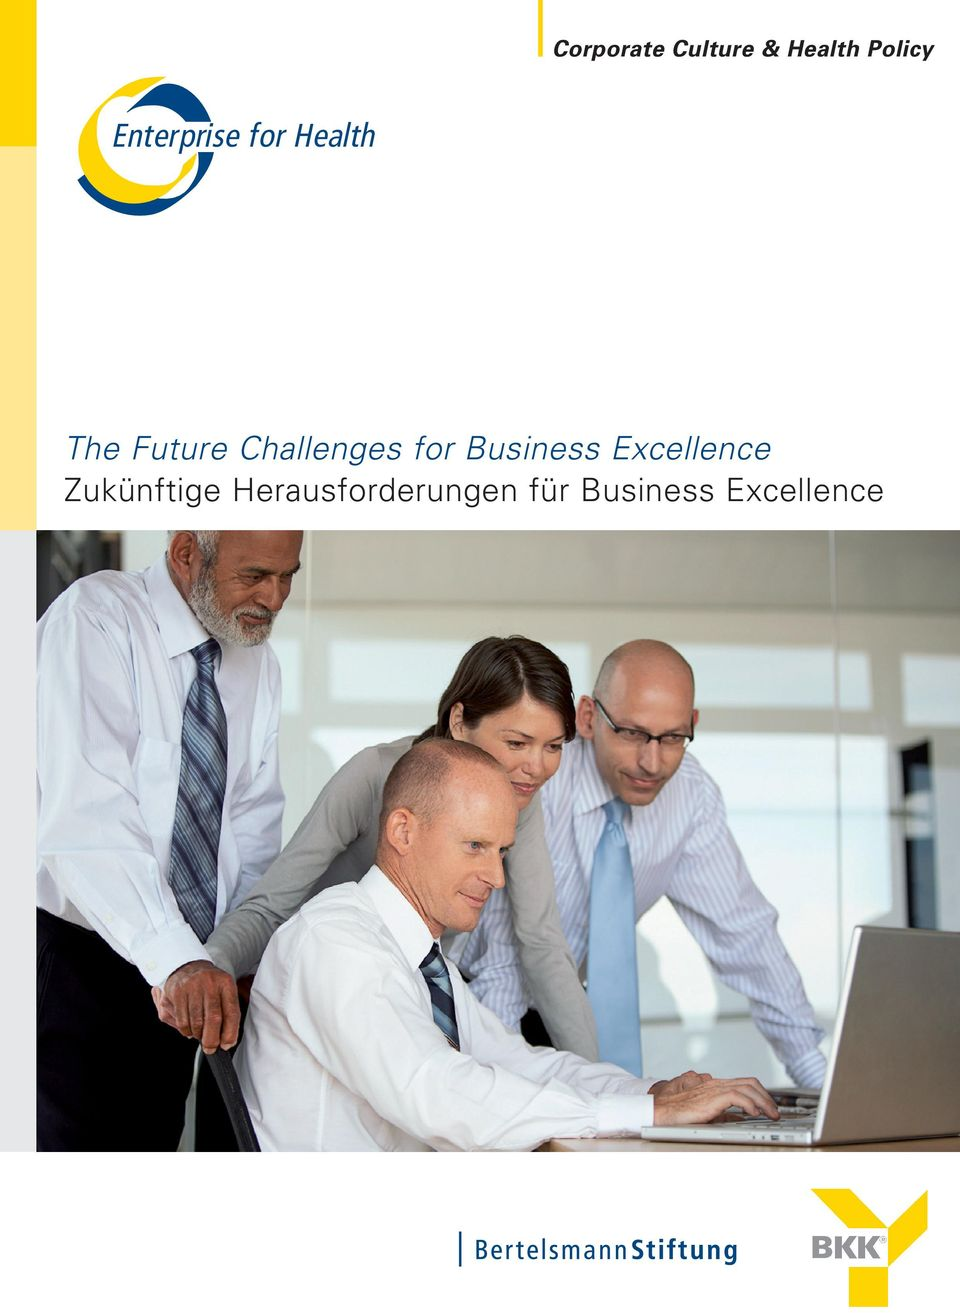 Challenges for Business Excellence